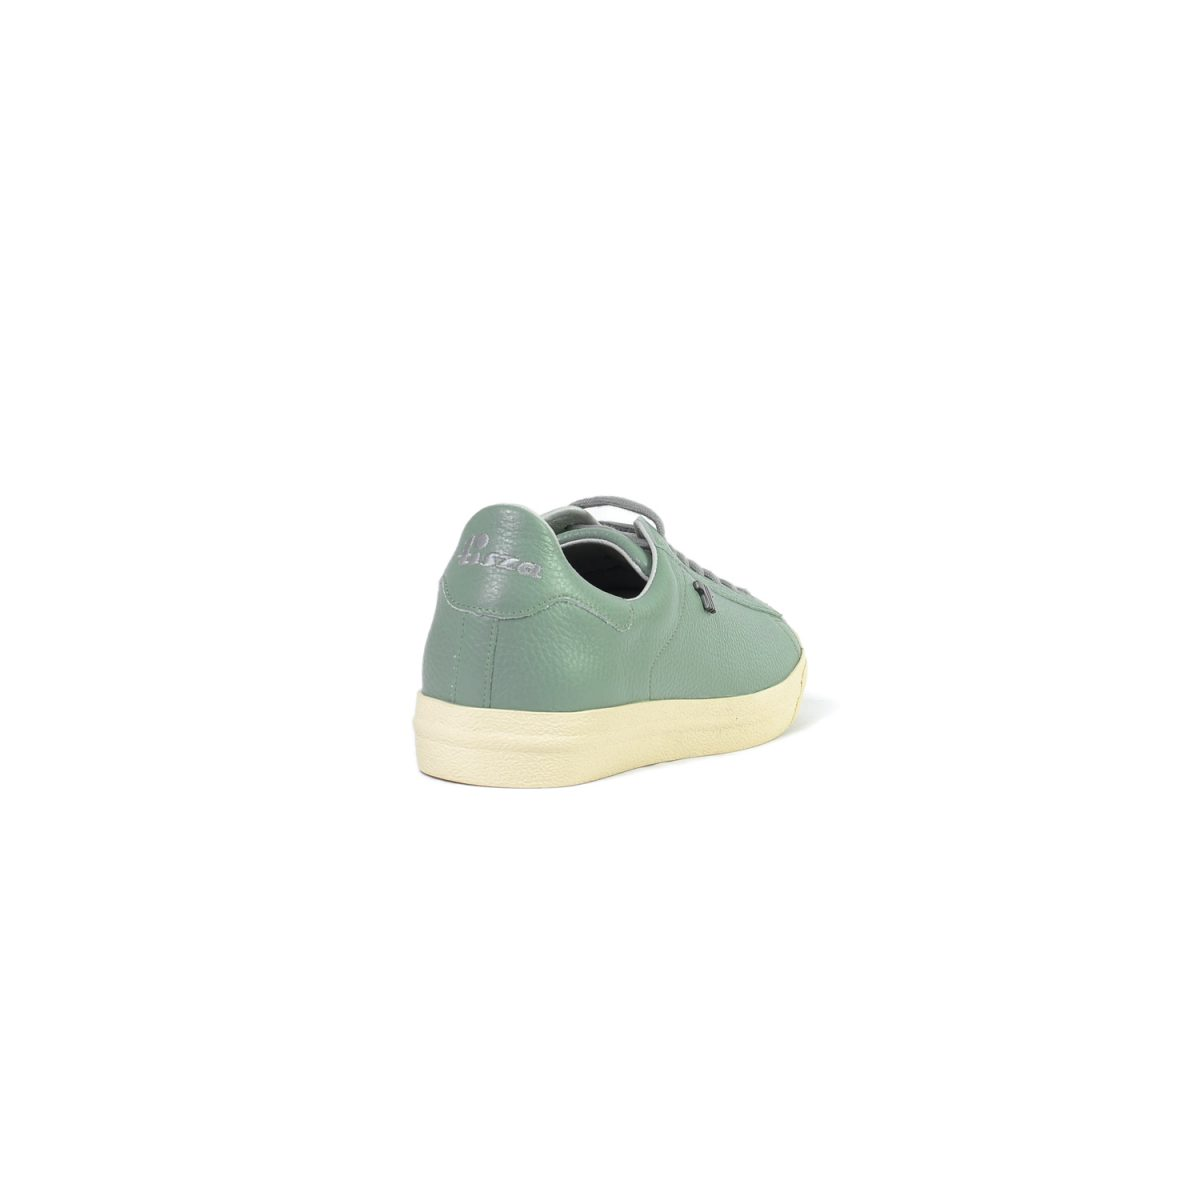 Tisza shoes - Simple - Olive